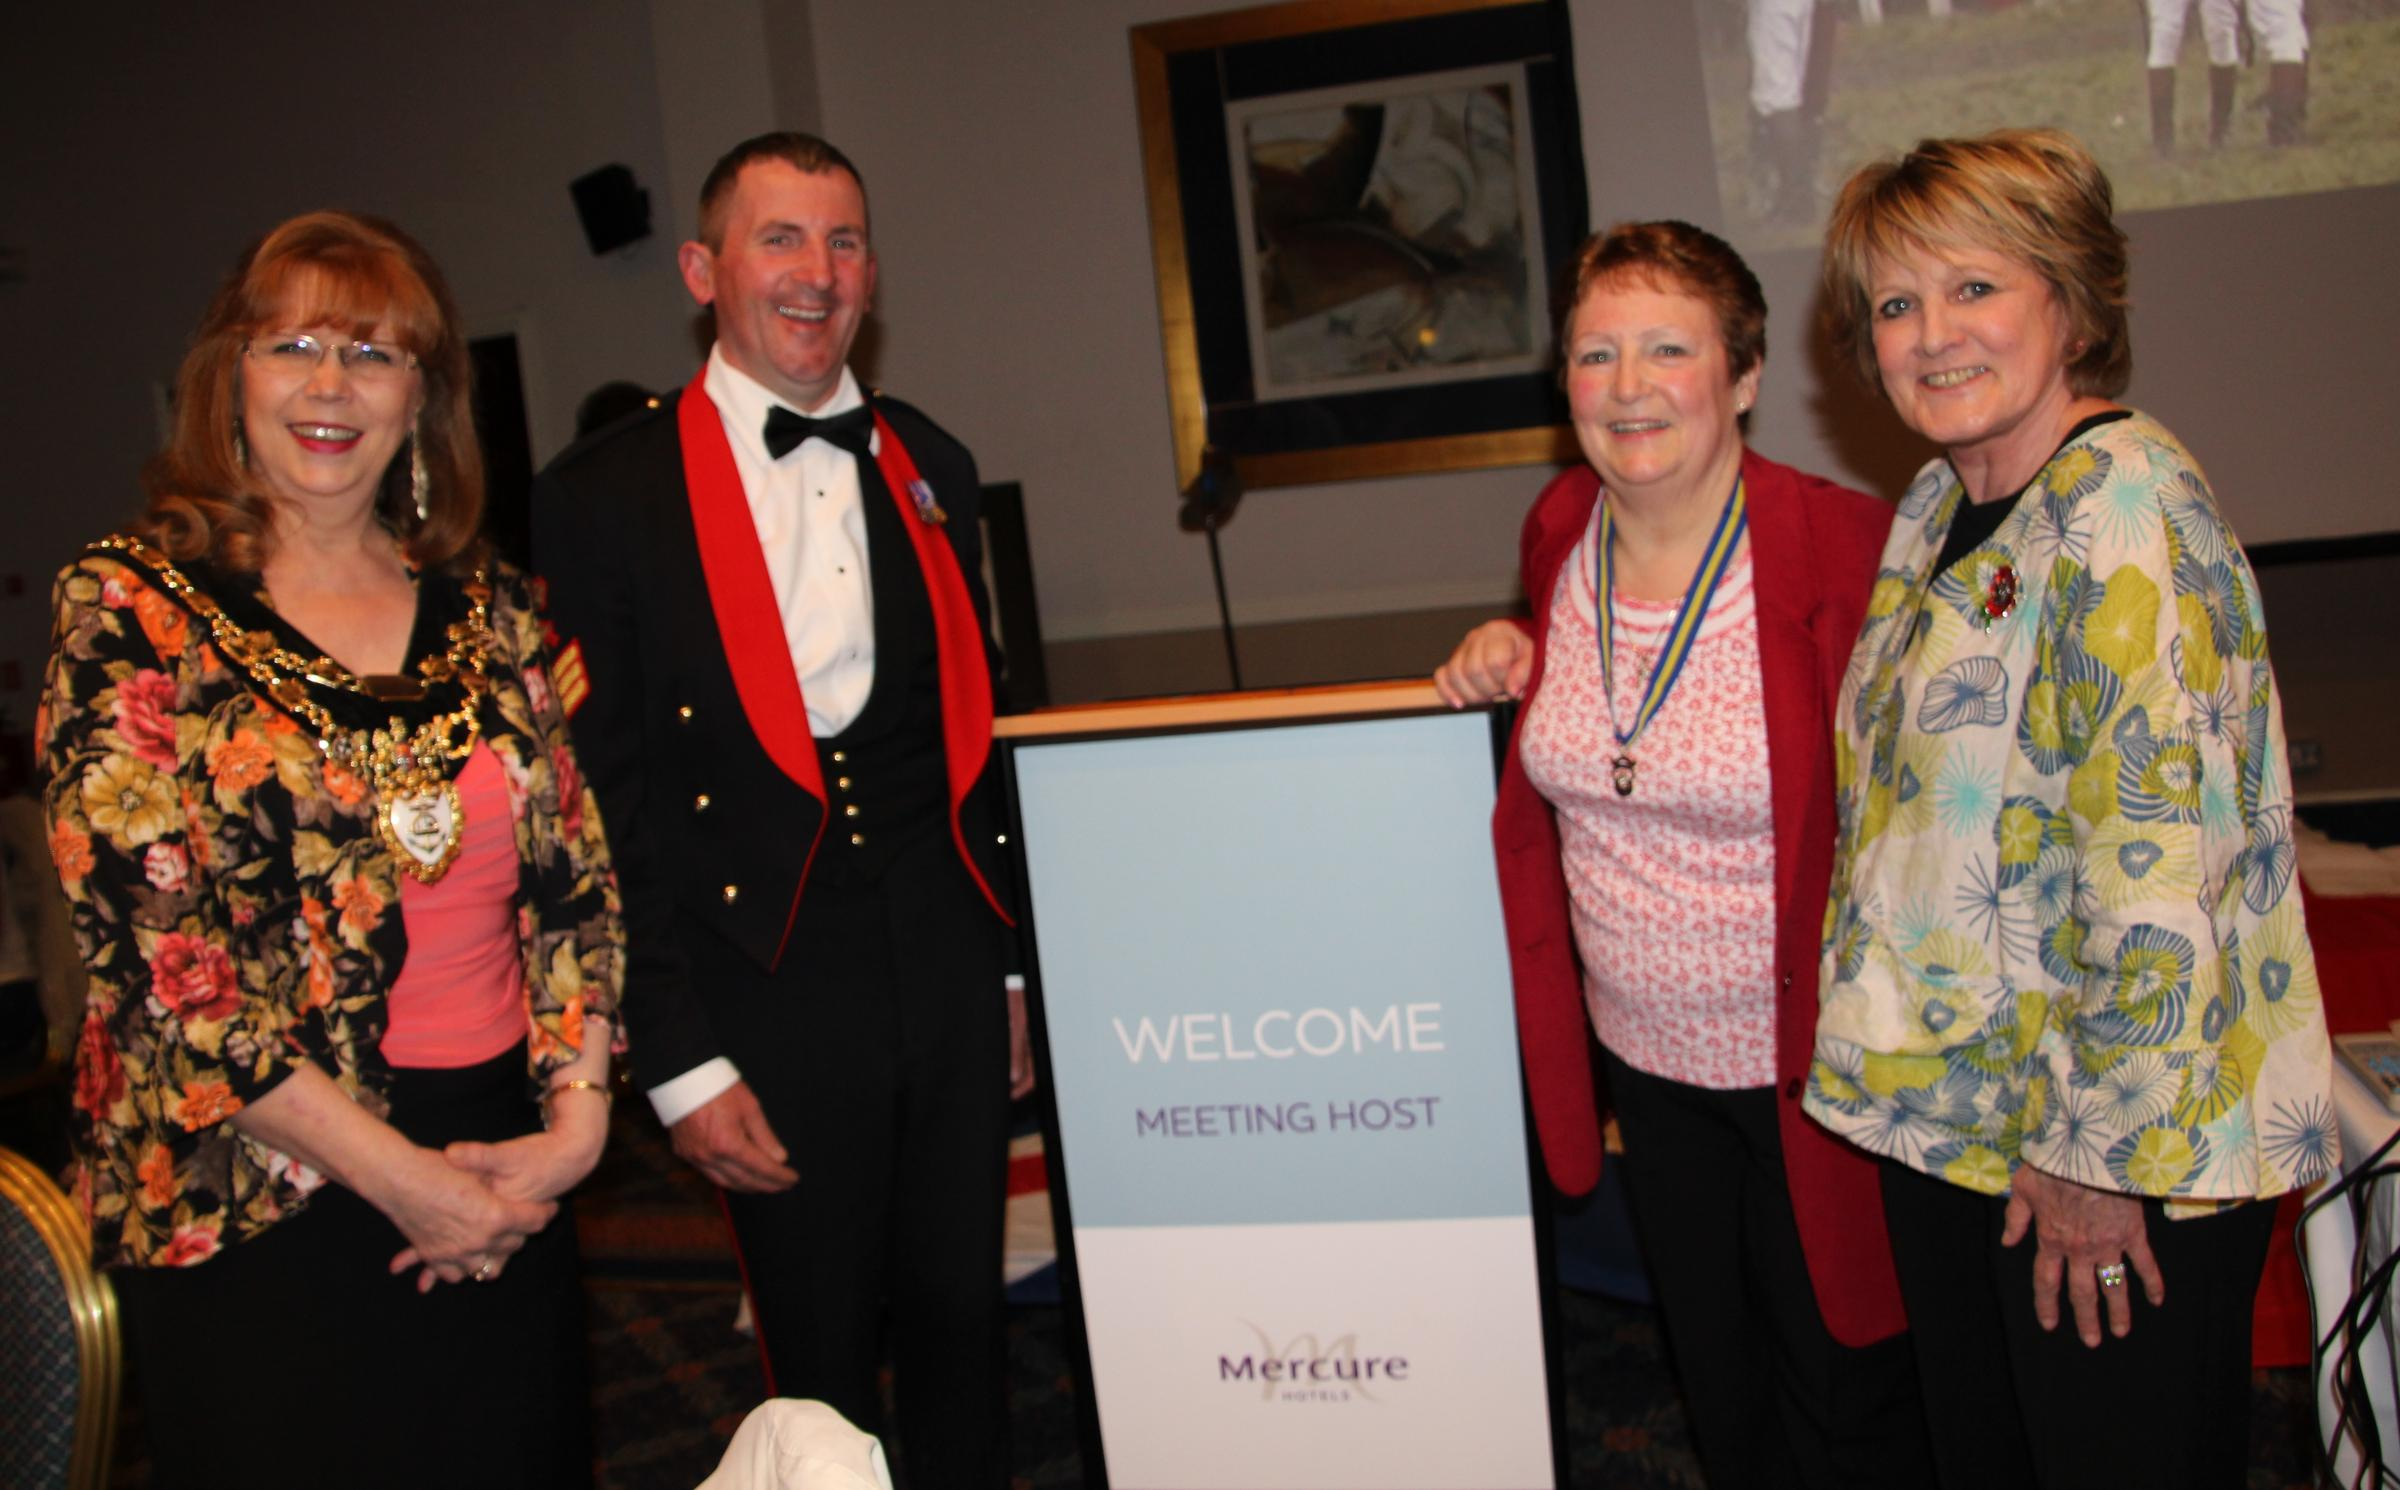 FUNDRAISING EVENTS: From left, former mayor of Bewdley, Linda Candlin, Charlie Lloyd, Jackie Taylor and Annie Cox.